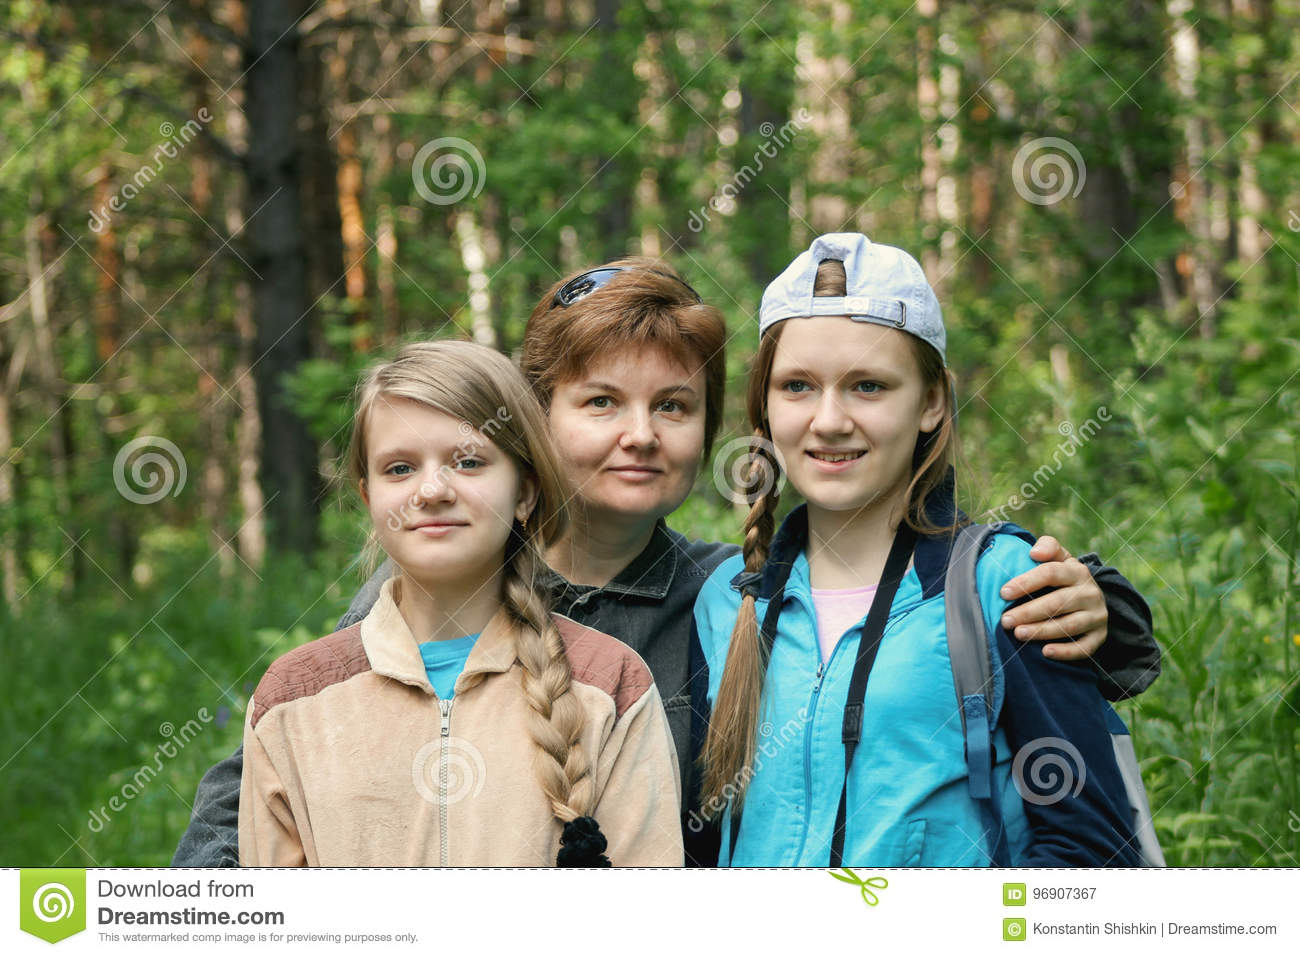 Mother and her daughters teenagers in park